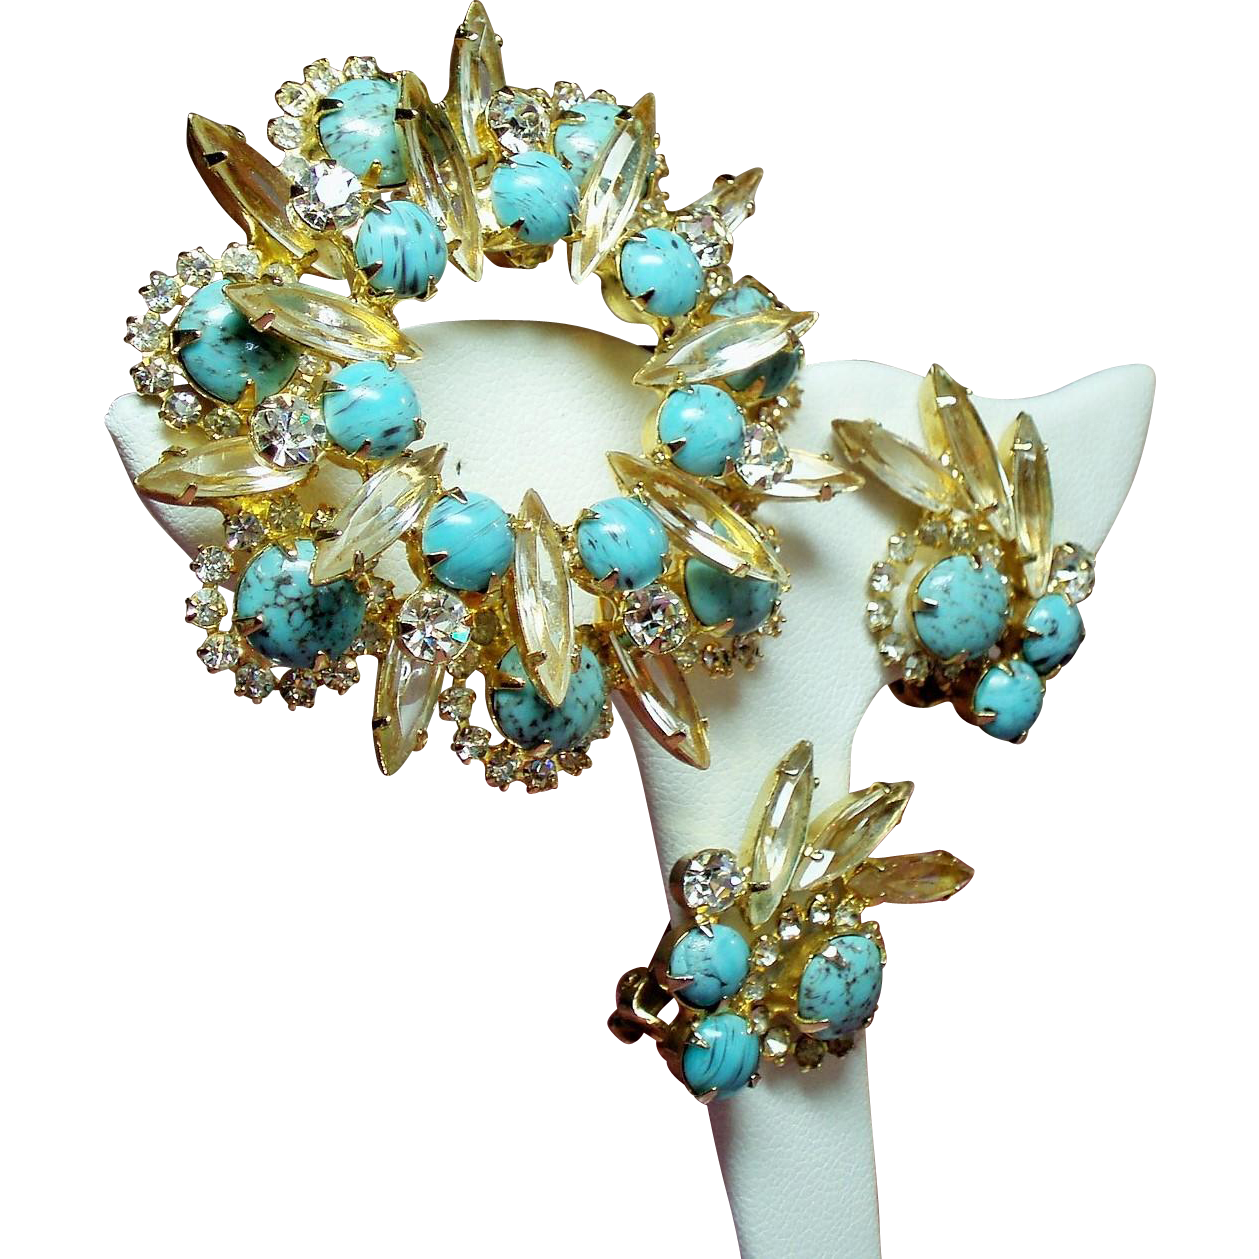 Vintage Faux Turquoise Matrix Cabochon Navette Rhinestone Tiered Brooch Earrings Set